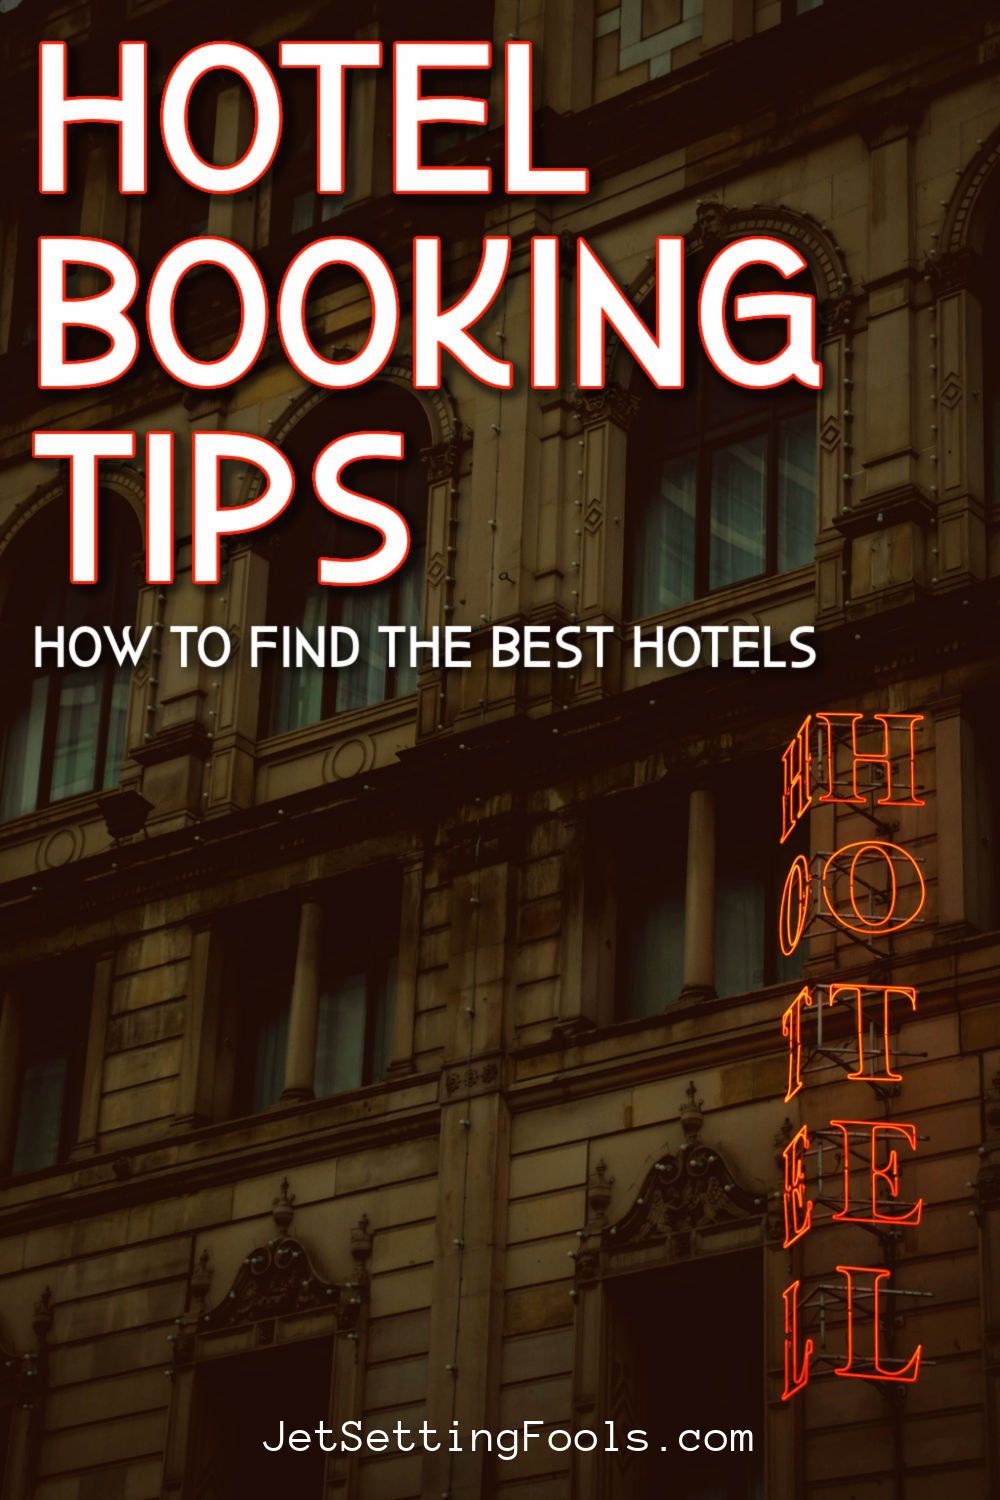 Hotel Booking Tips by JetSettingFools.com